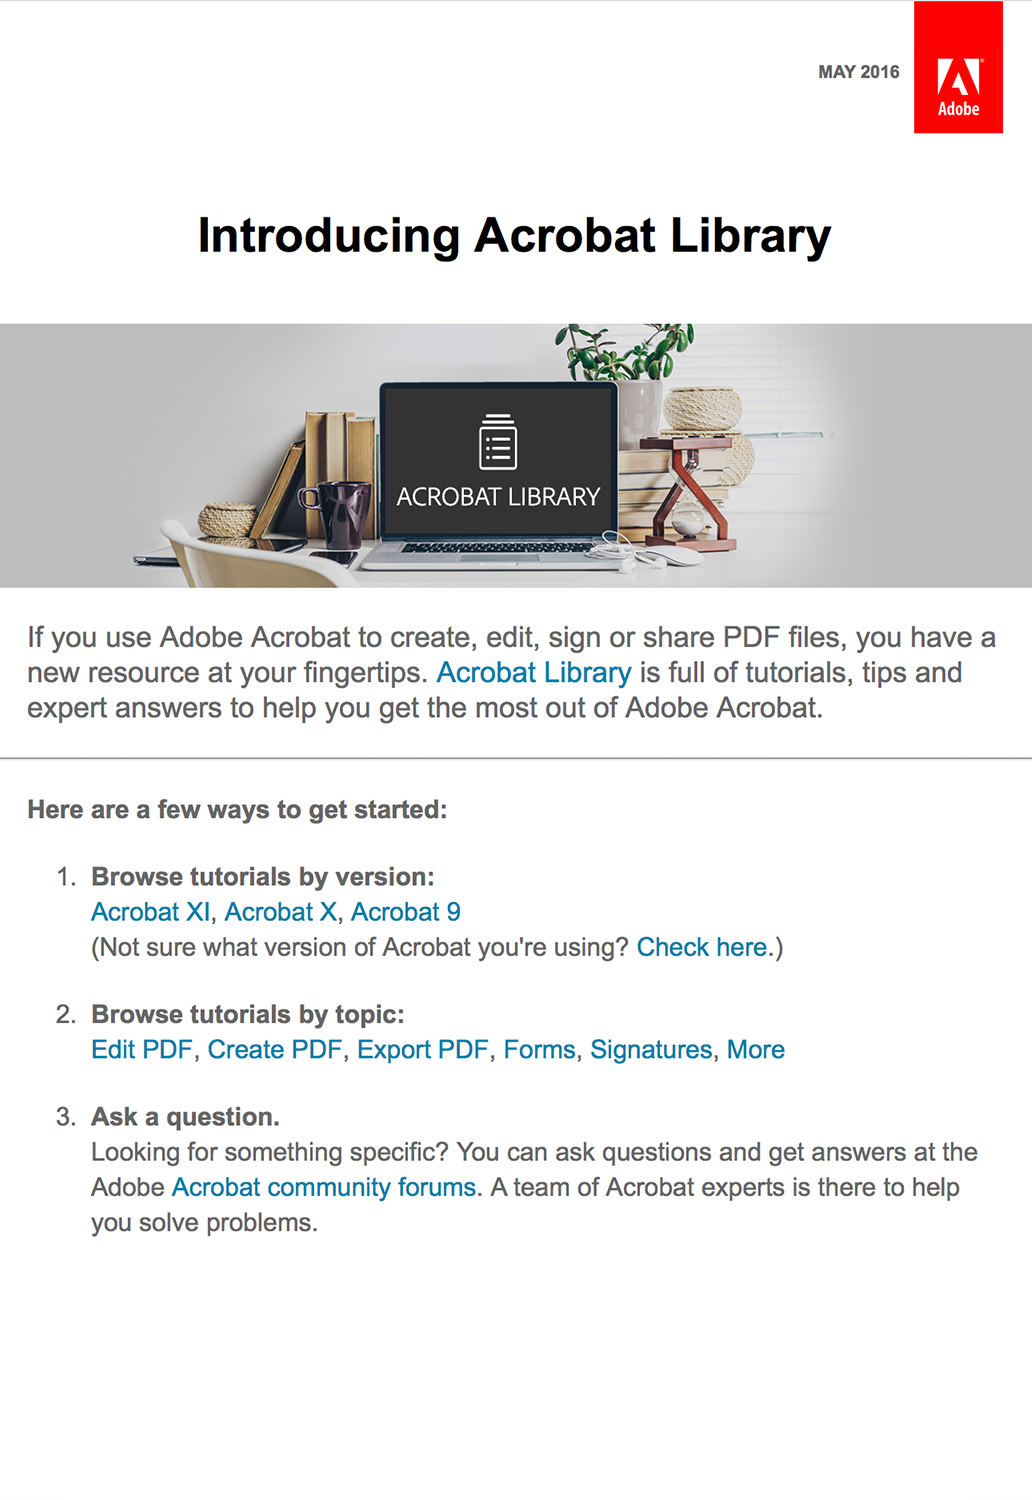 Technology Email Marketing - Adobe